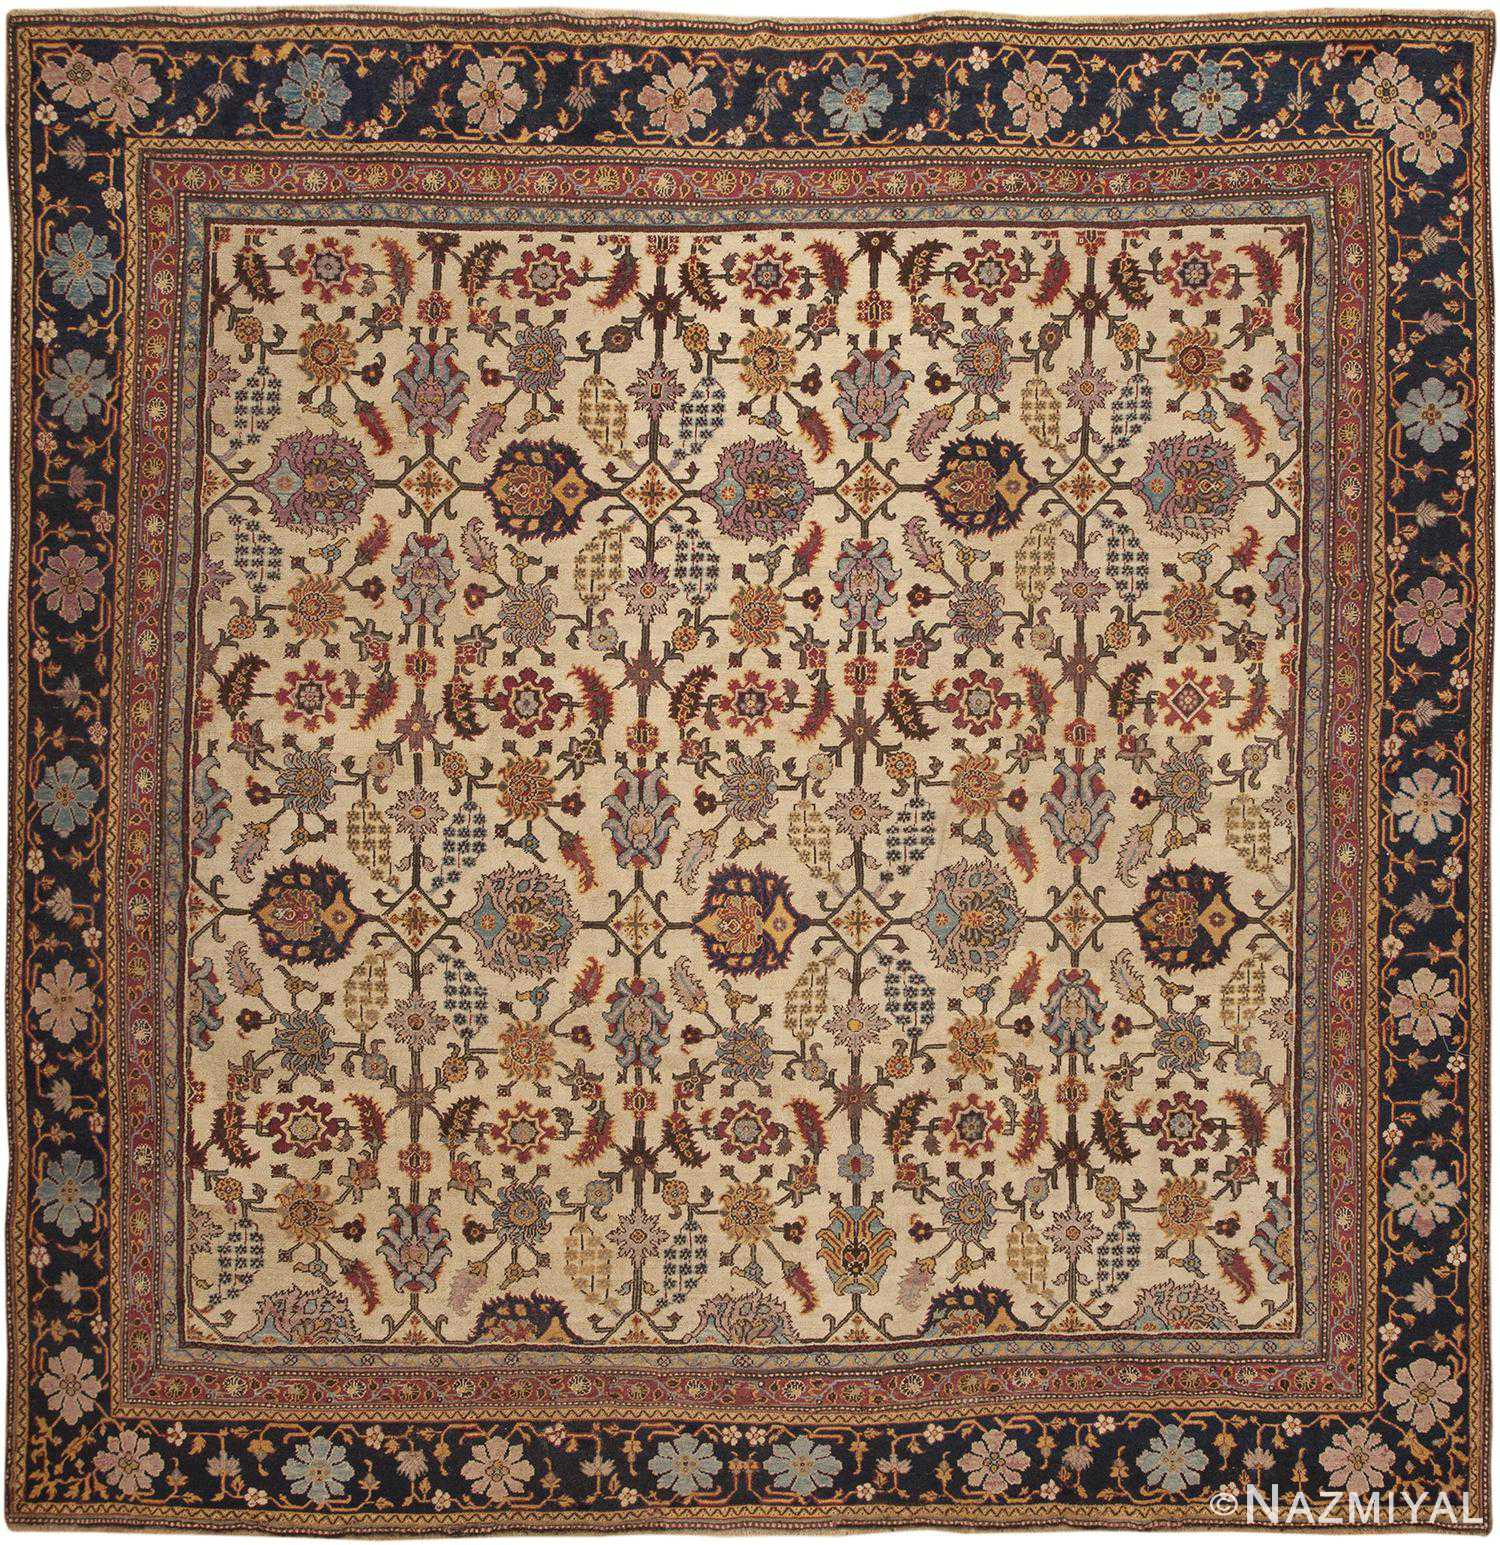 Antique Indian Agra Rug 44429 Detail/Large View